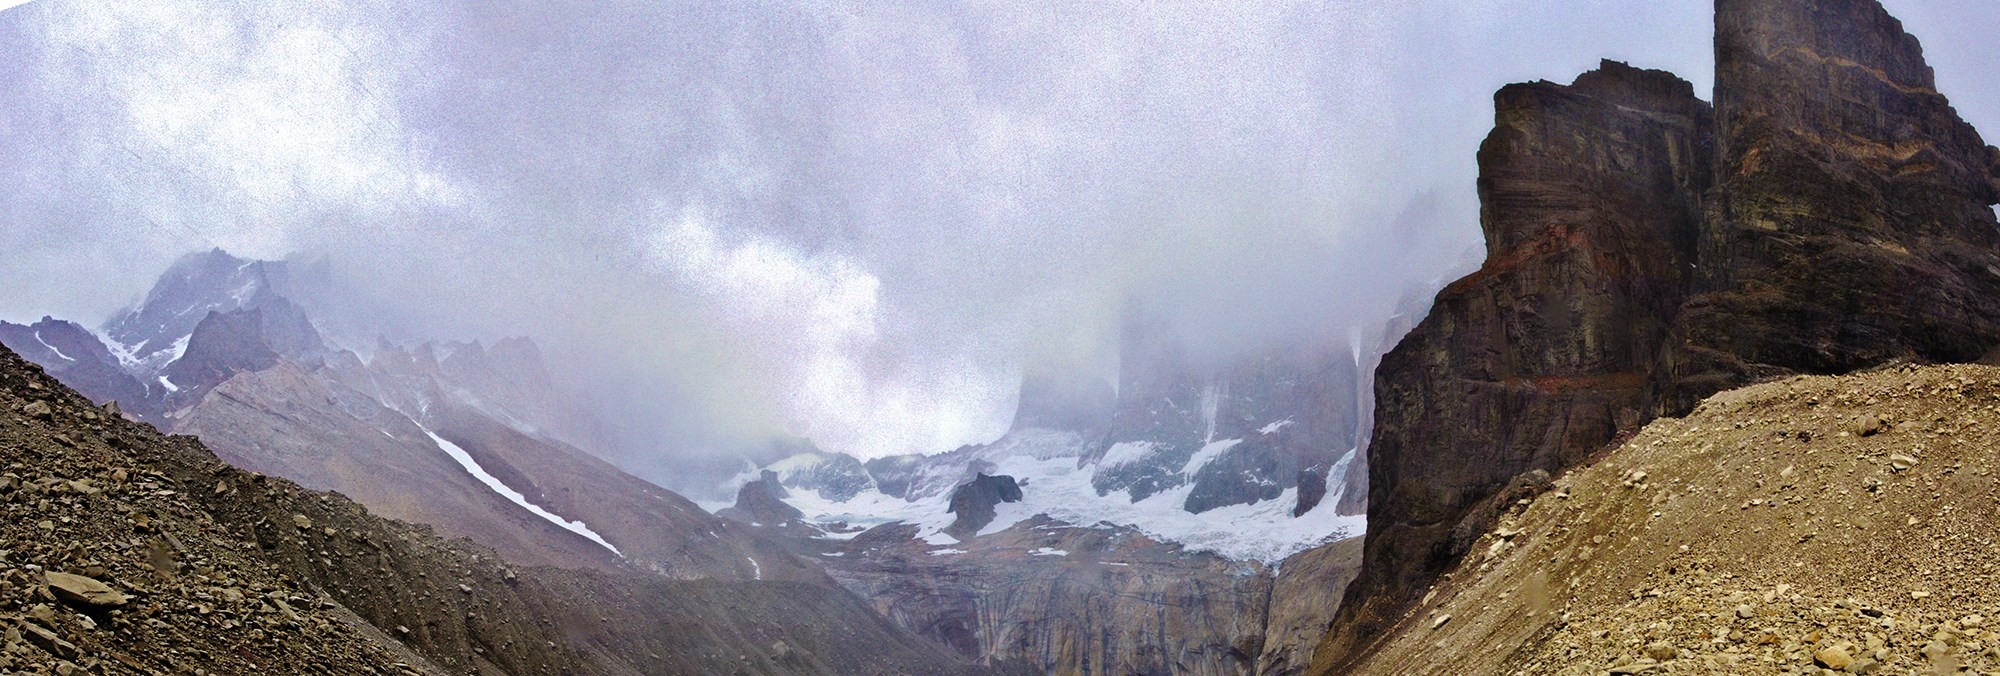 Torres del Paine...covered in snow clouds. Click for a larger version